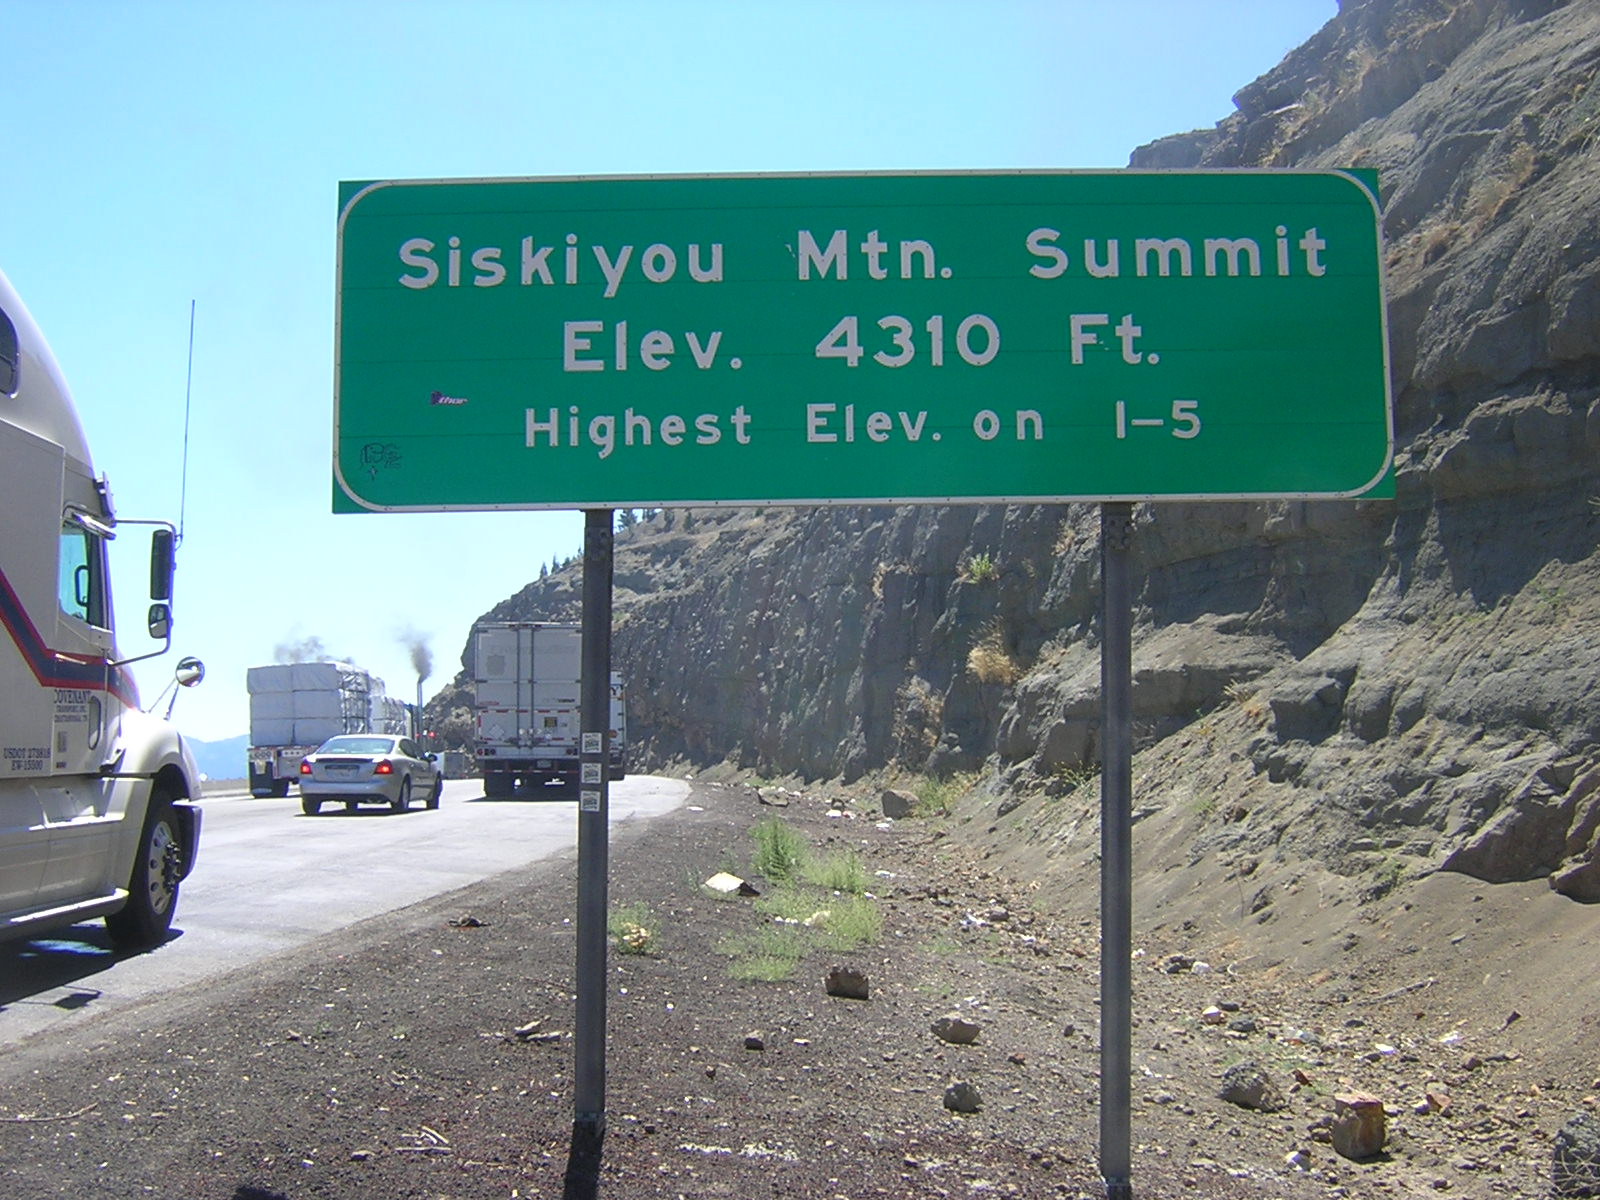 Siskiyou Summit - Wikipedia